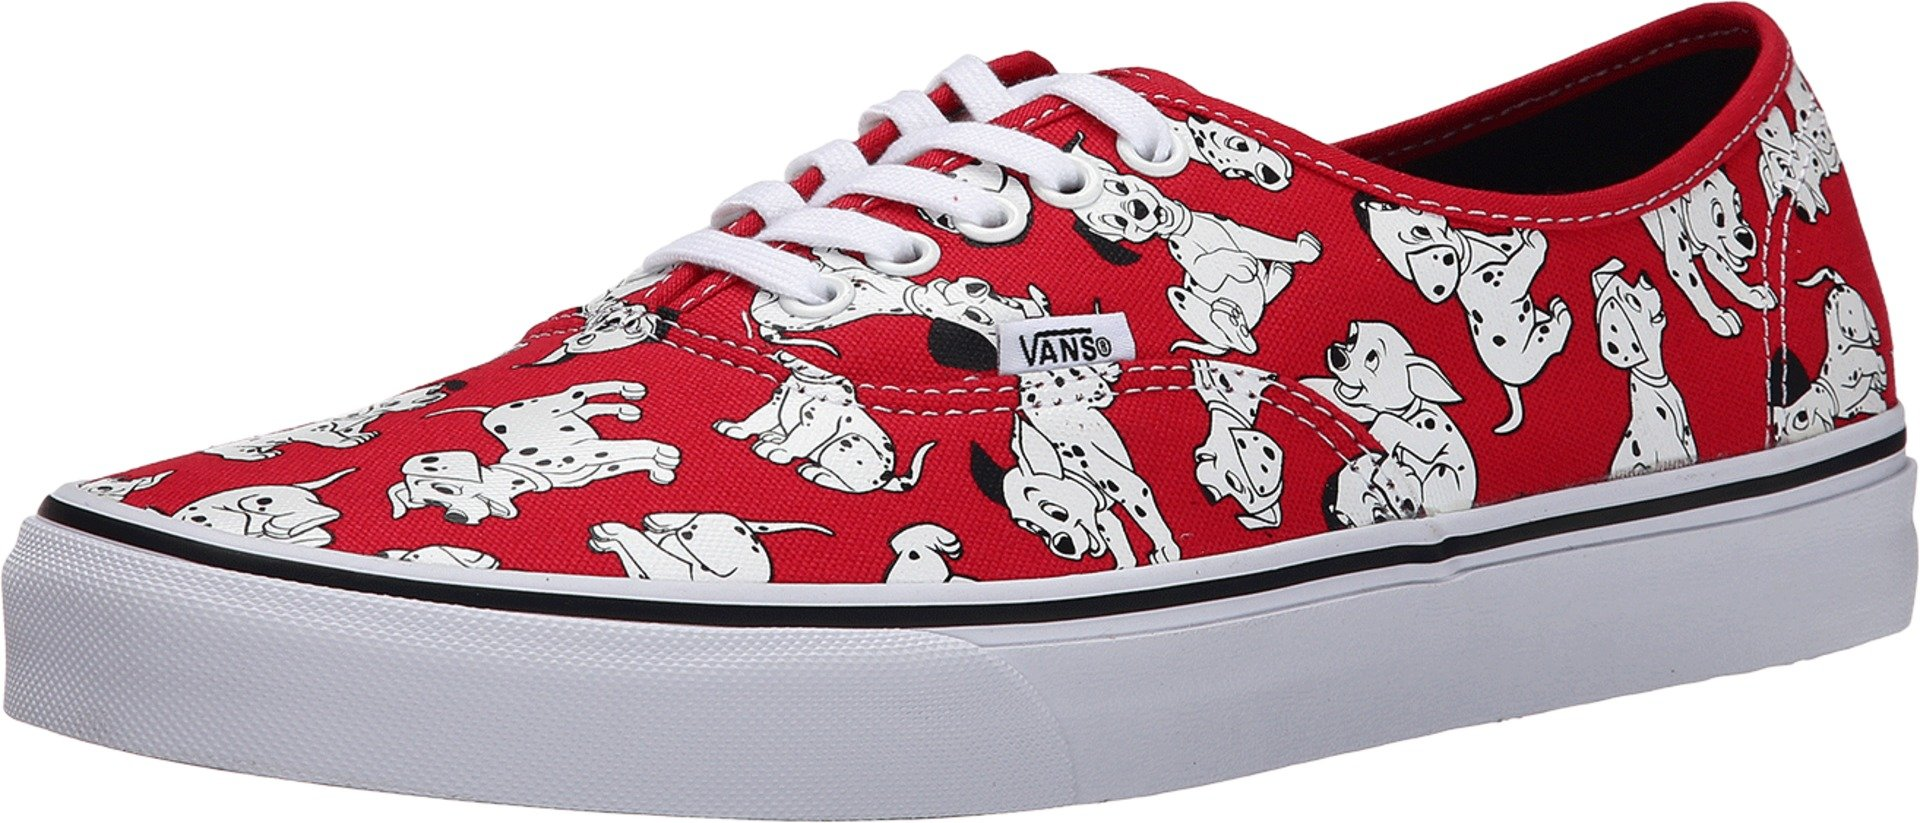 Vans Authentic Shoes (Disney) Dalmatians Unisex Red Sneakers (4.5 Men)